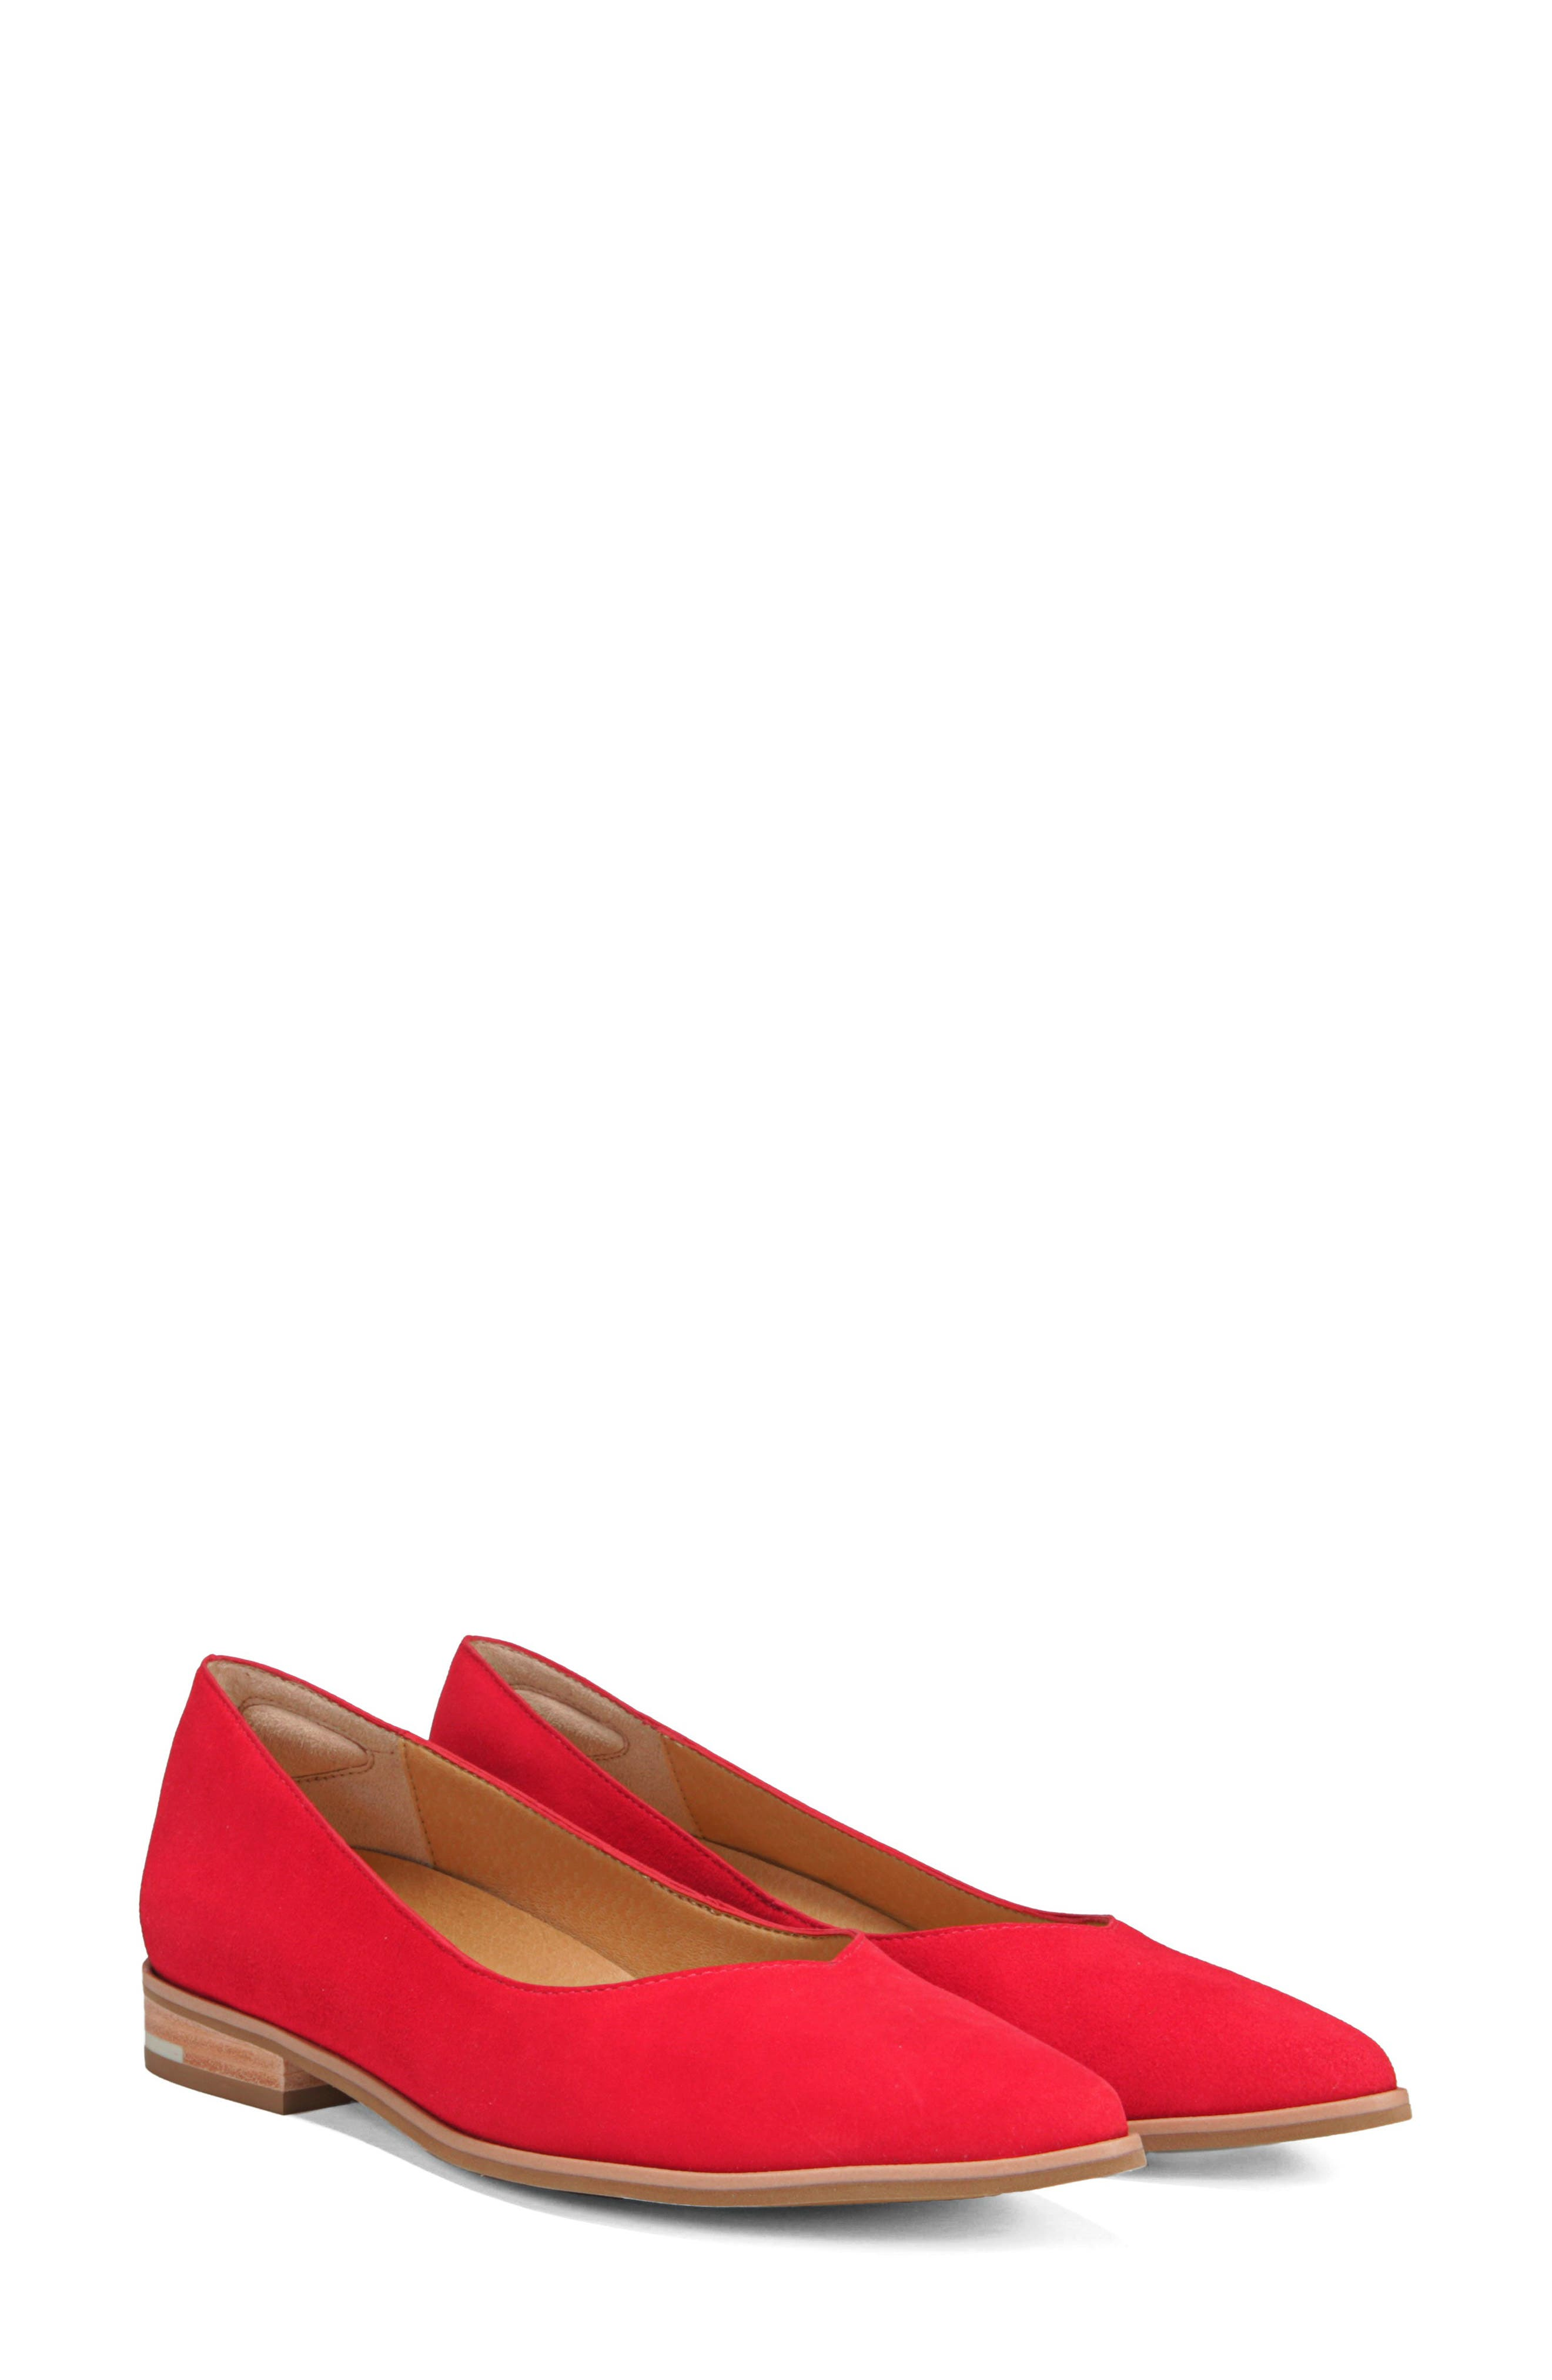 Dr. Scholls Flair Flat,                             Alternate thumbnail 8, color,                             RED LEATHER